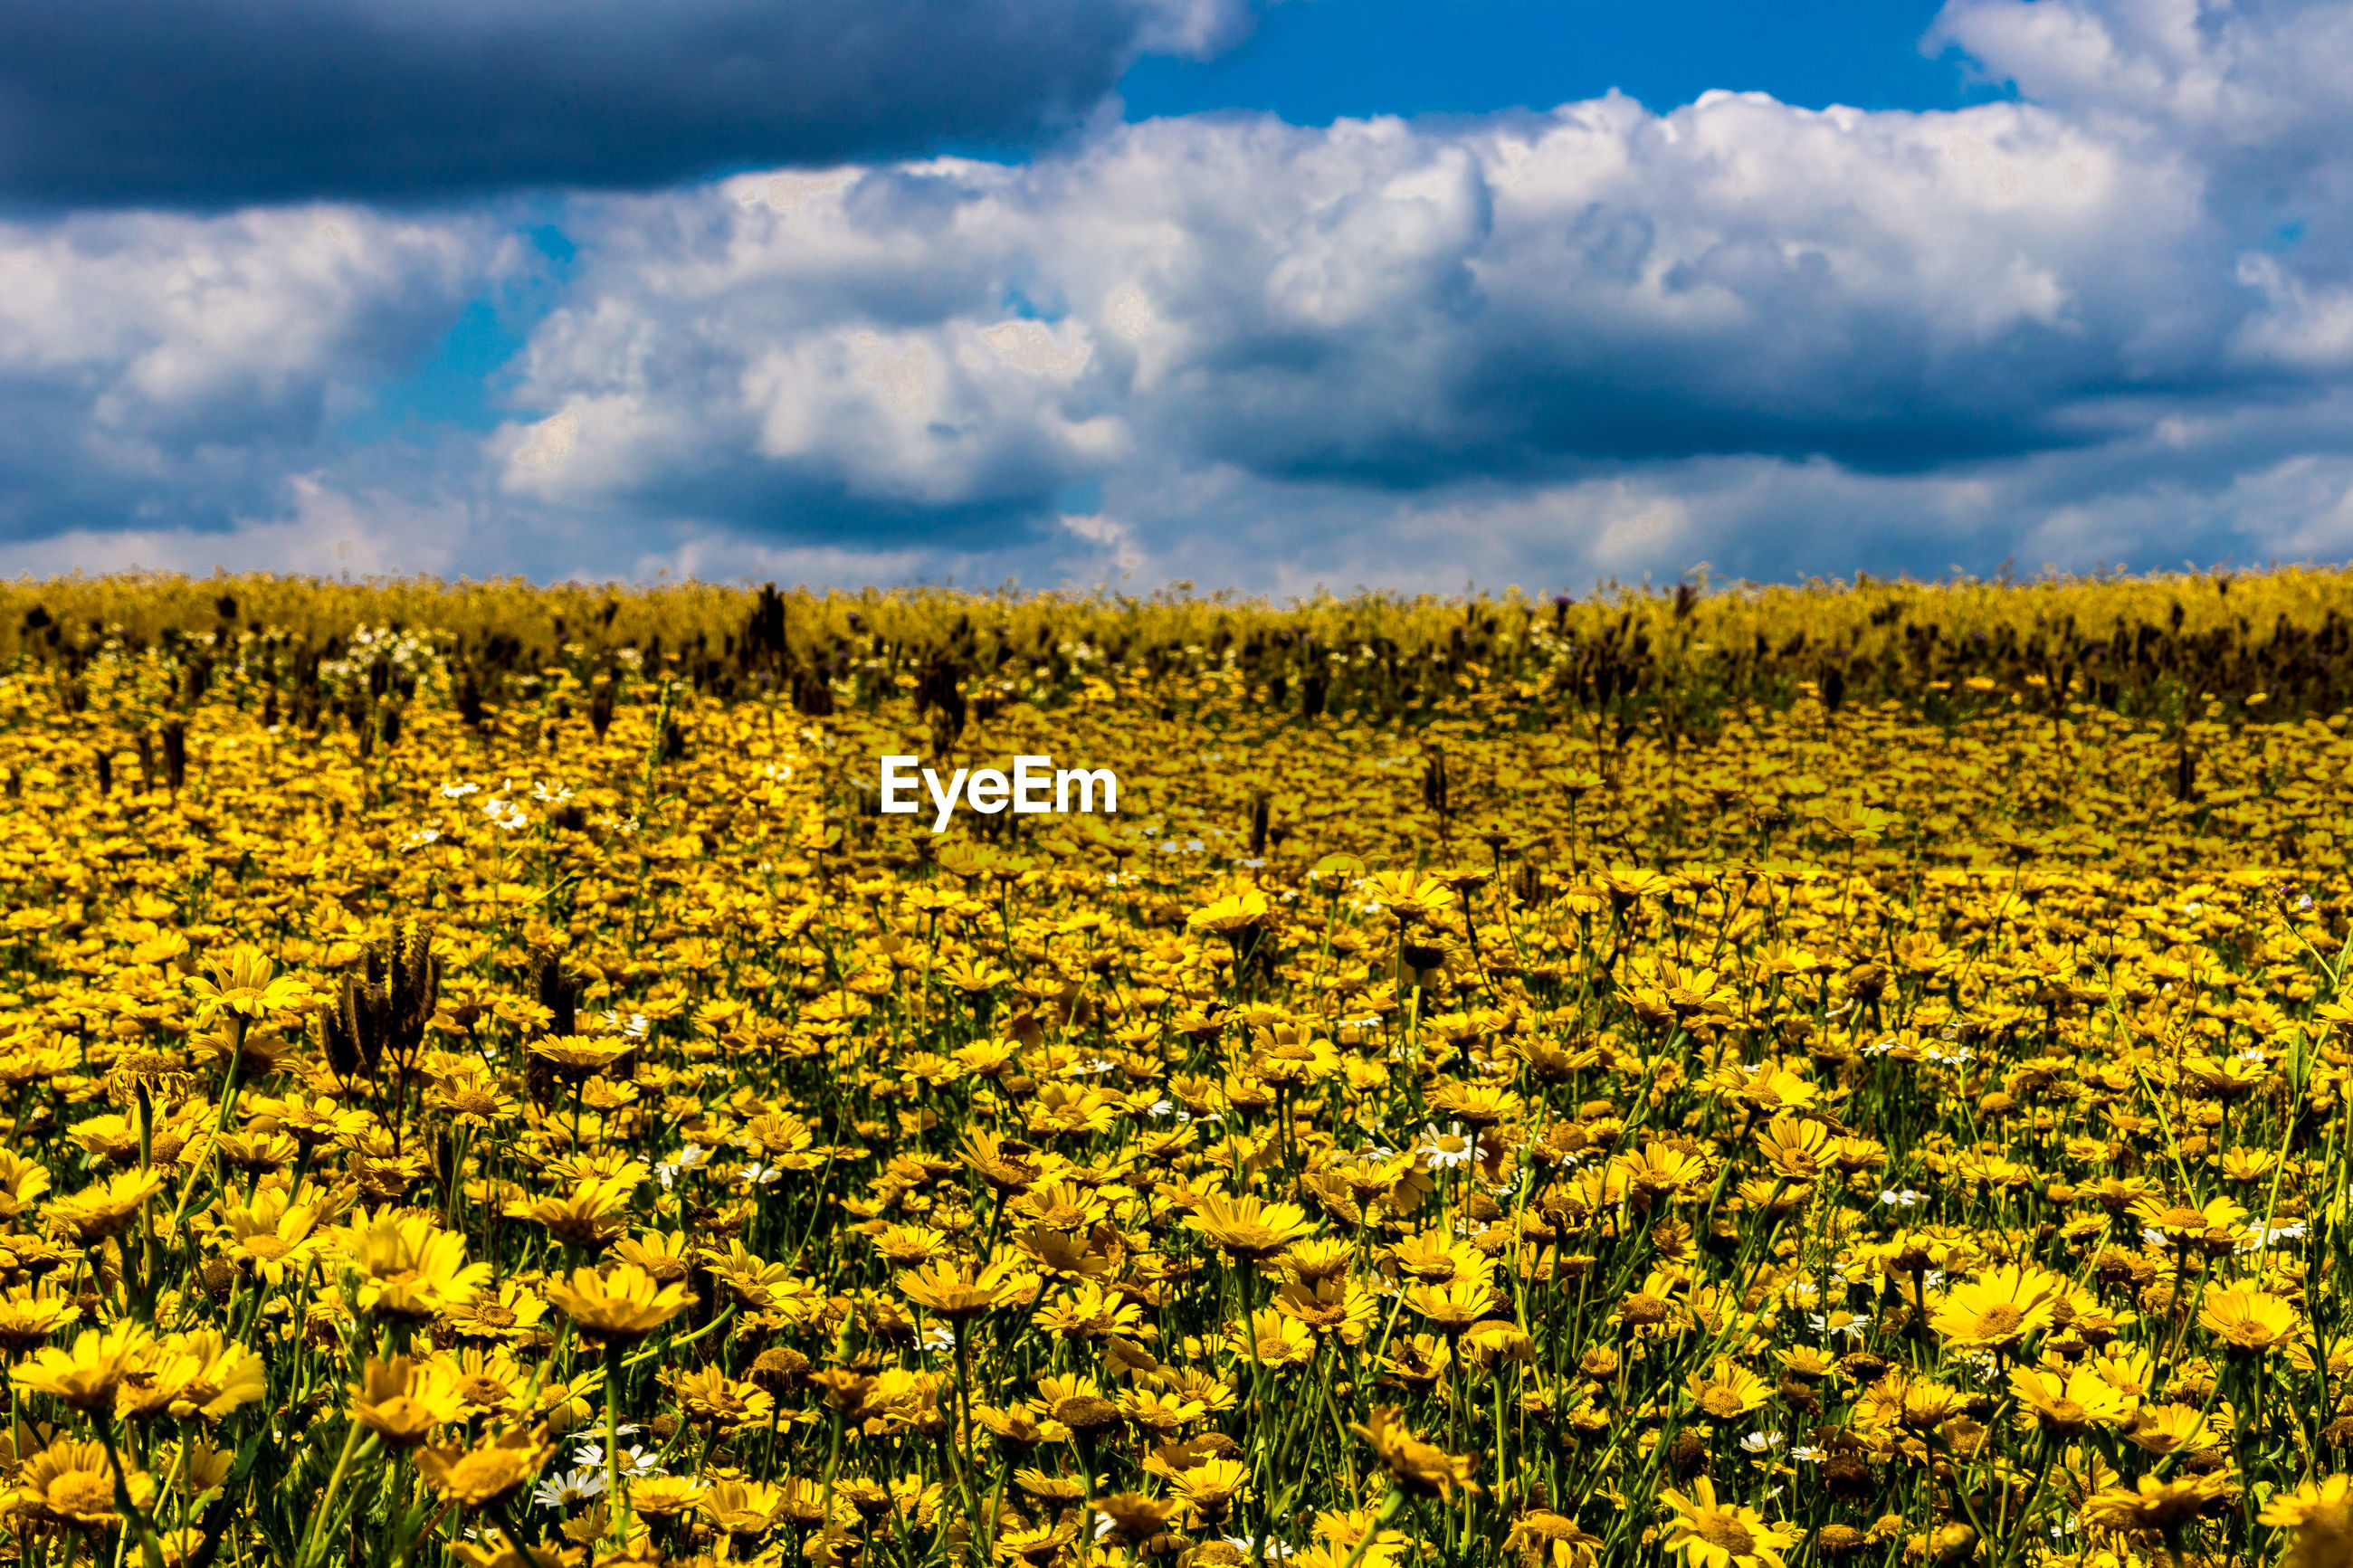 Yellow flowers blooming on field against cloudy sky